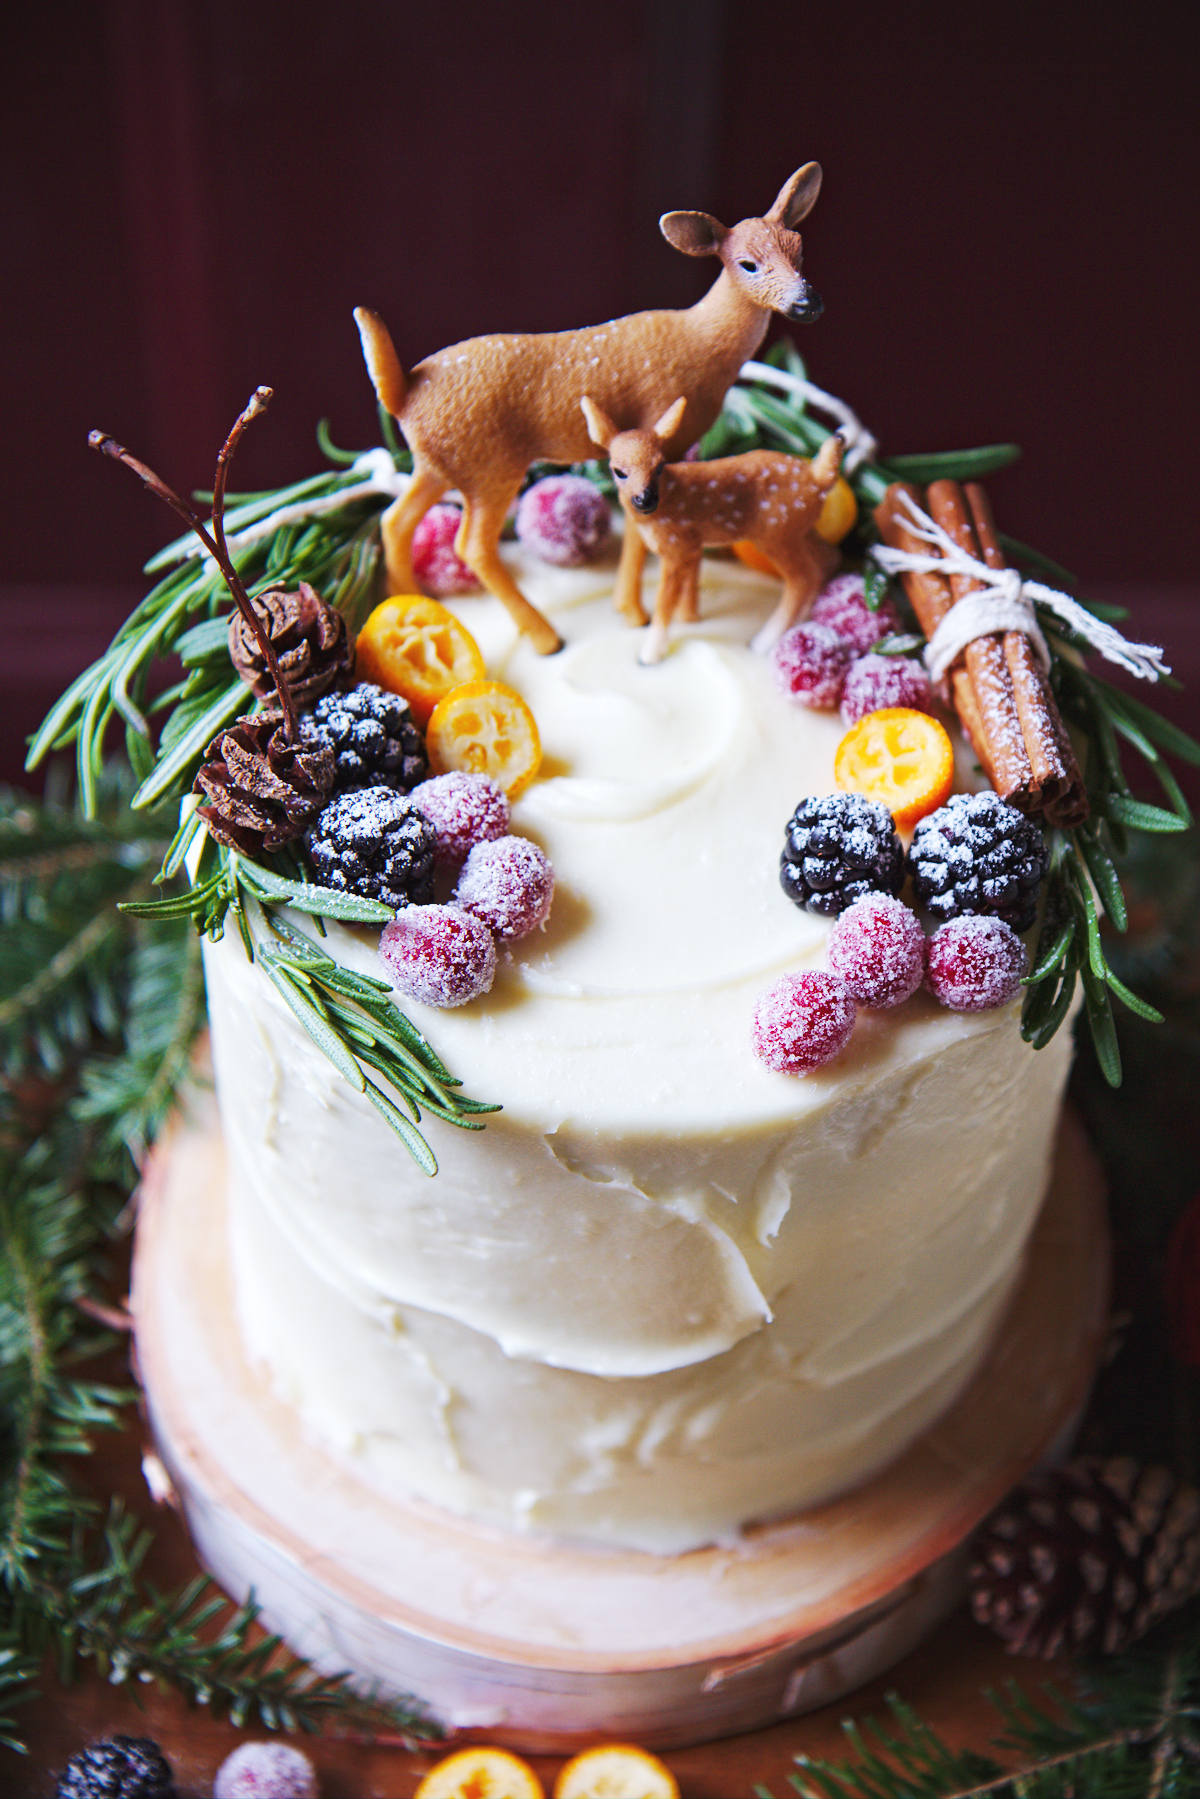 DIY red velvet Christmas cake with white chocolate cream cheese frosting